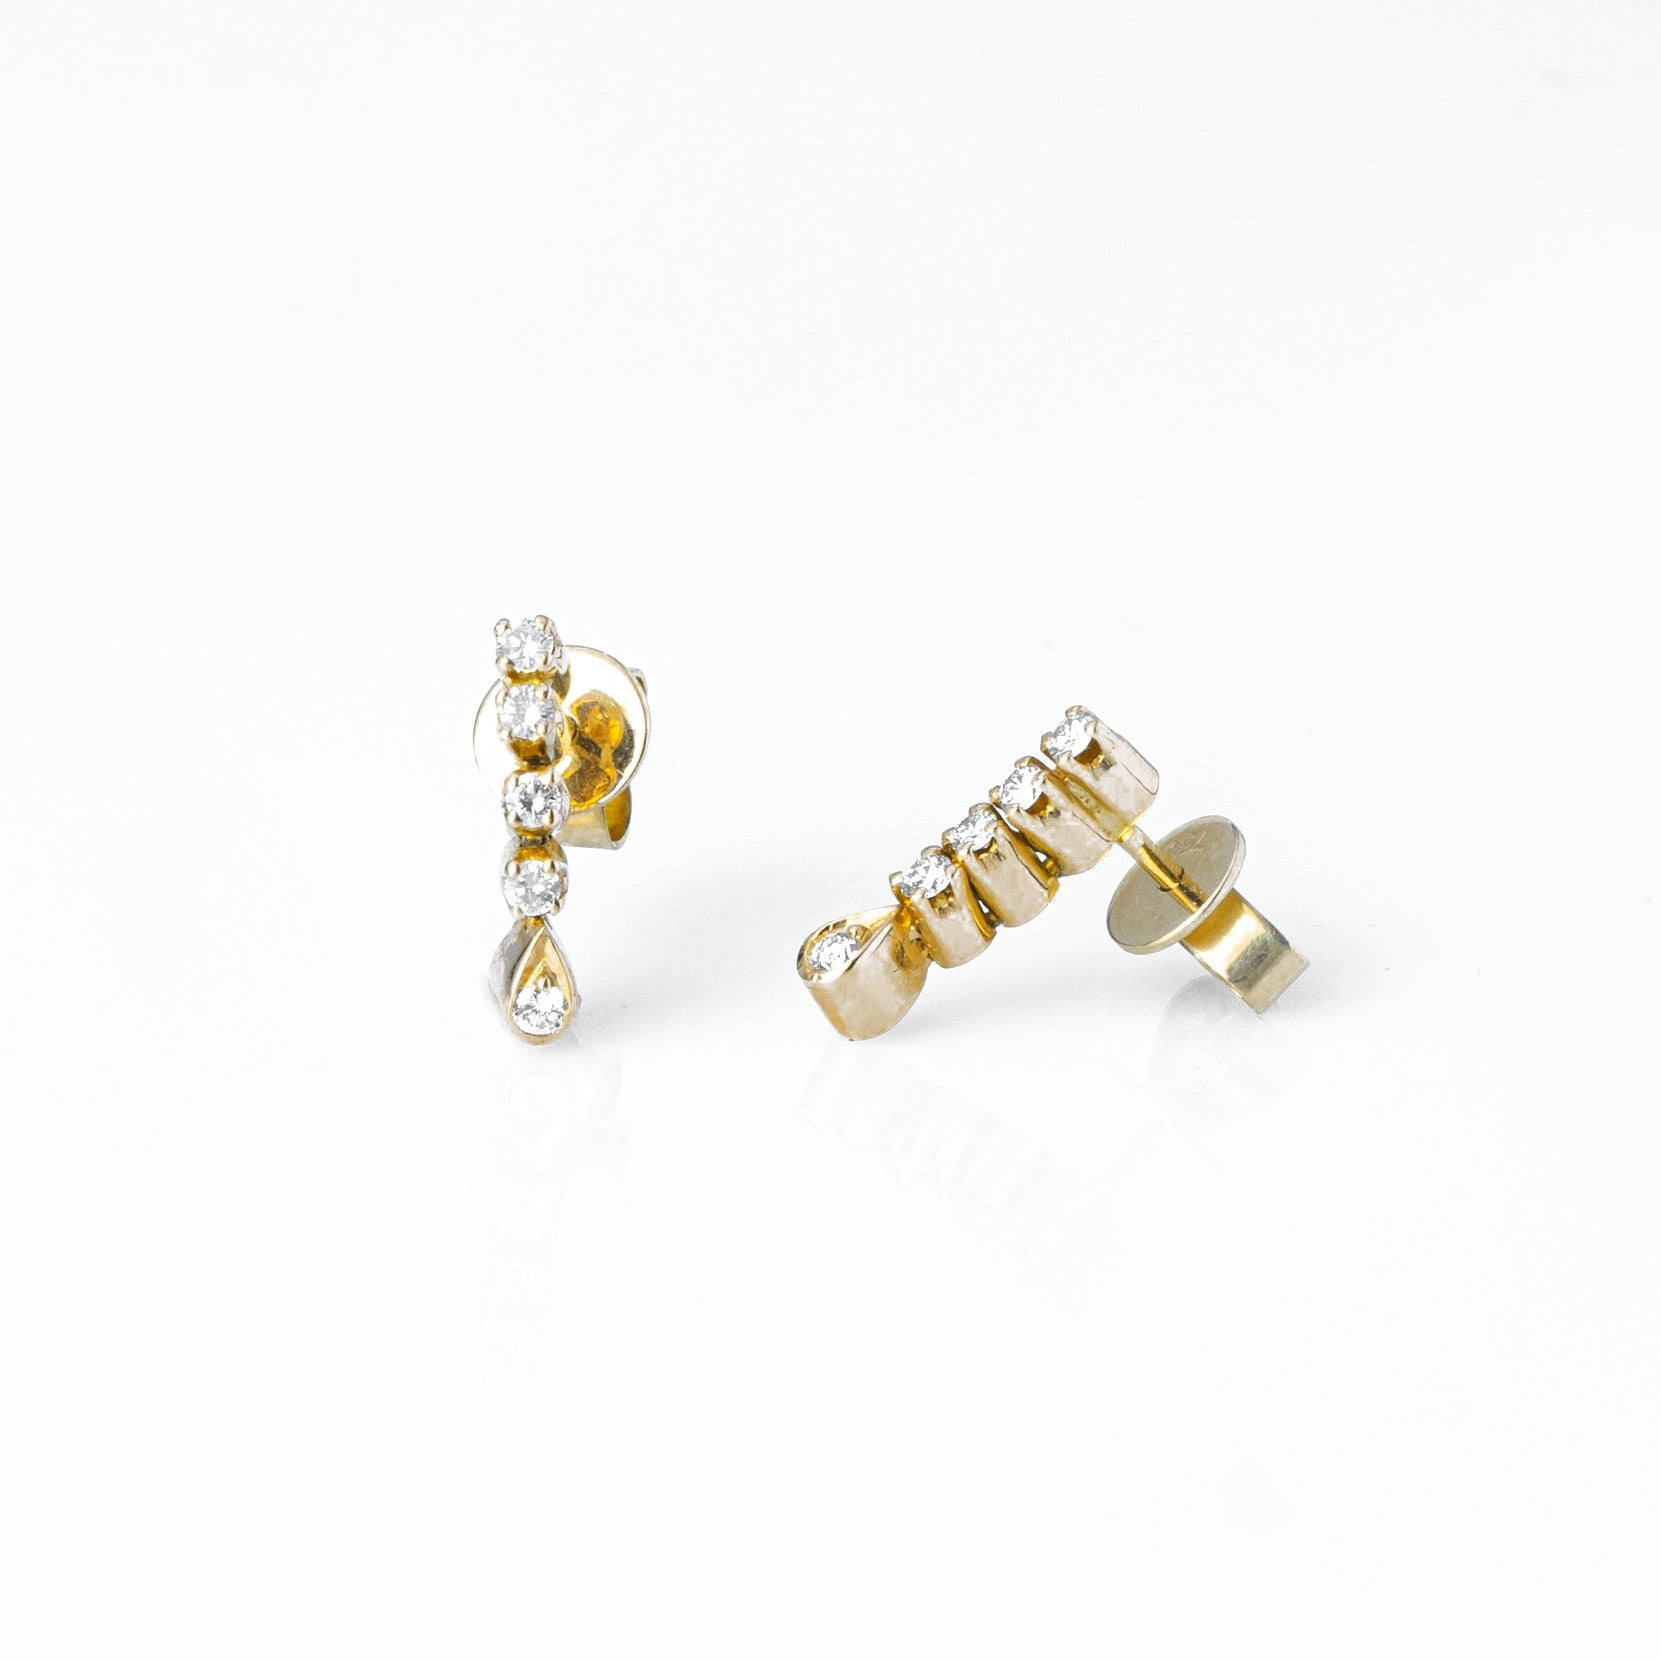 18ct Yellow Gold Diamond Earrings with Push Backs (E-7695)